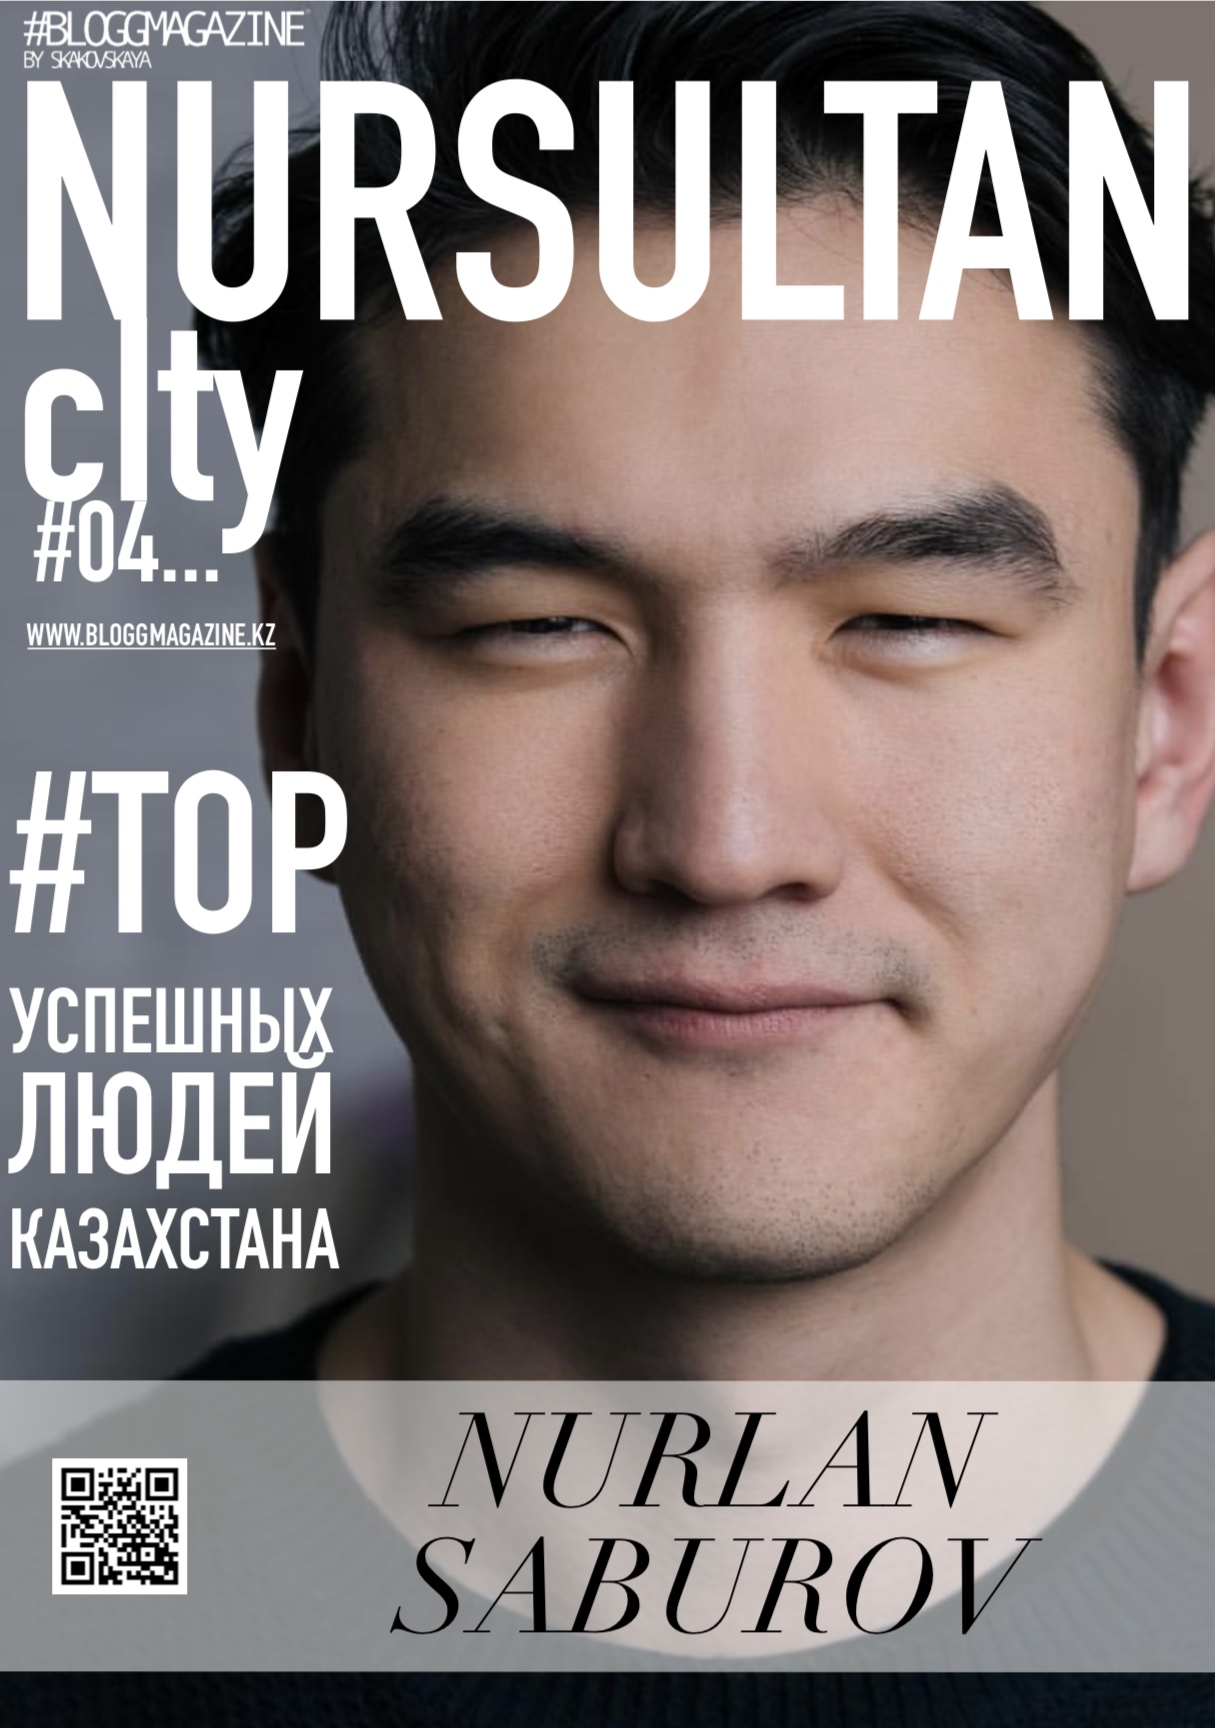 04 NURSULTAN city, #BLOGGMAGAZINE